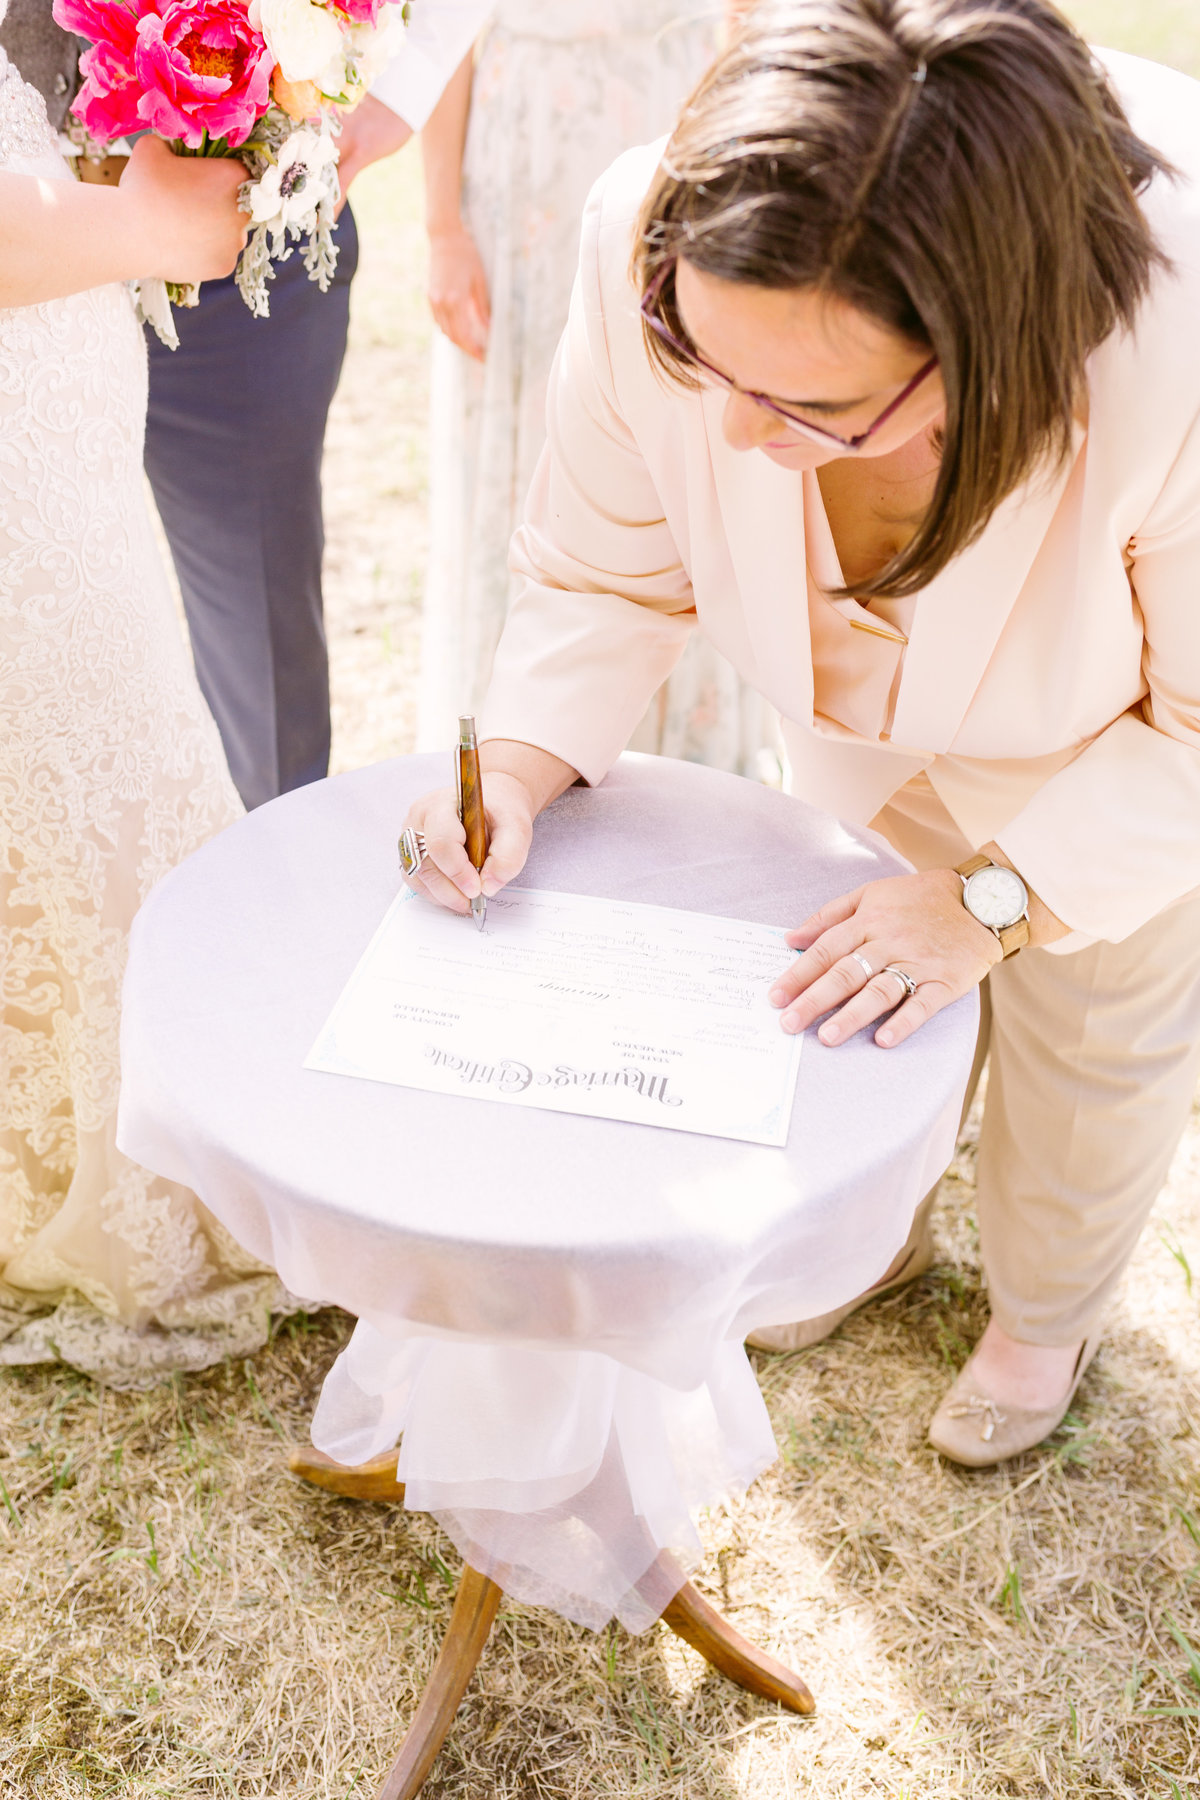 Albuquerque Outdoor Country Wedding Photographer_www.tylerbrooke.com_Kate Kauffman-1-38